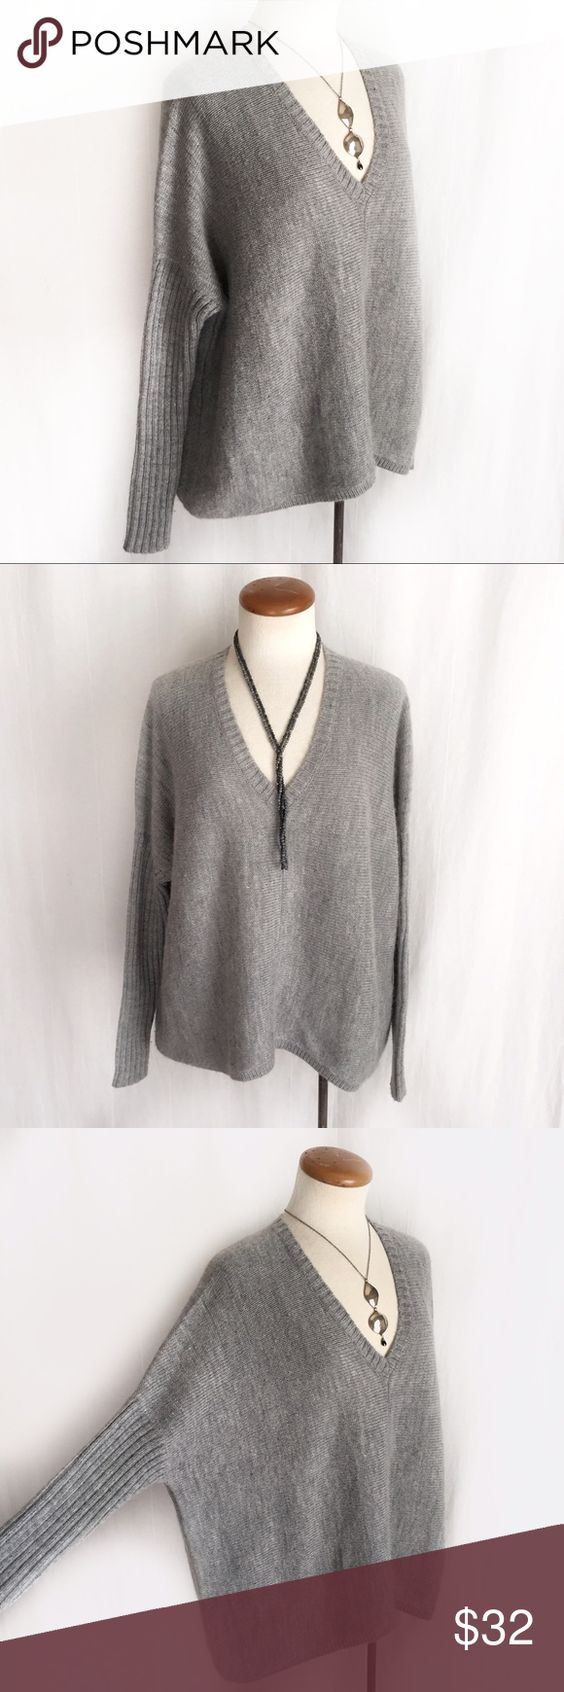 "Kenar Gray Oversized Sweater Oversized V-neck wool blend sweater with dolman/batwing style long sleeves. Light gray. 70% acrylic; 15% alpaca; 15% wool. Size Petite Small. Bust: 27"" flat across. Length: 24"". Very light wear. EUC. Thanks for looking! Kenar Sweaters V-Necks"